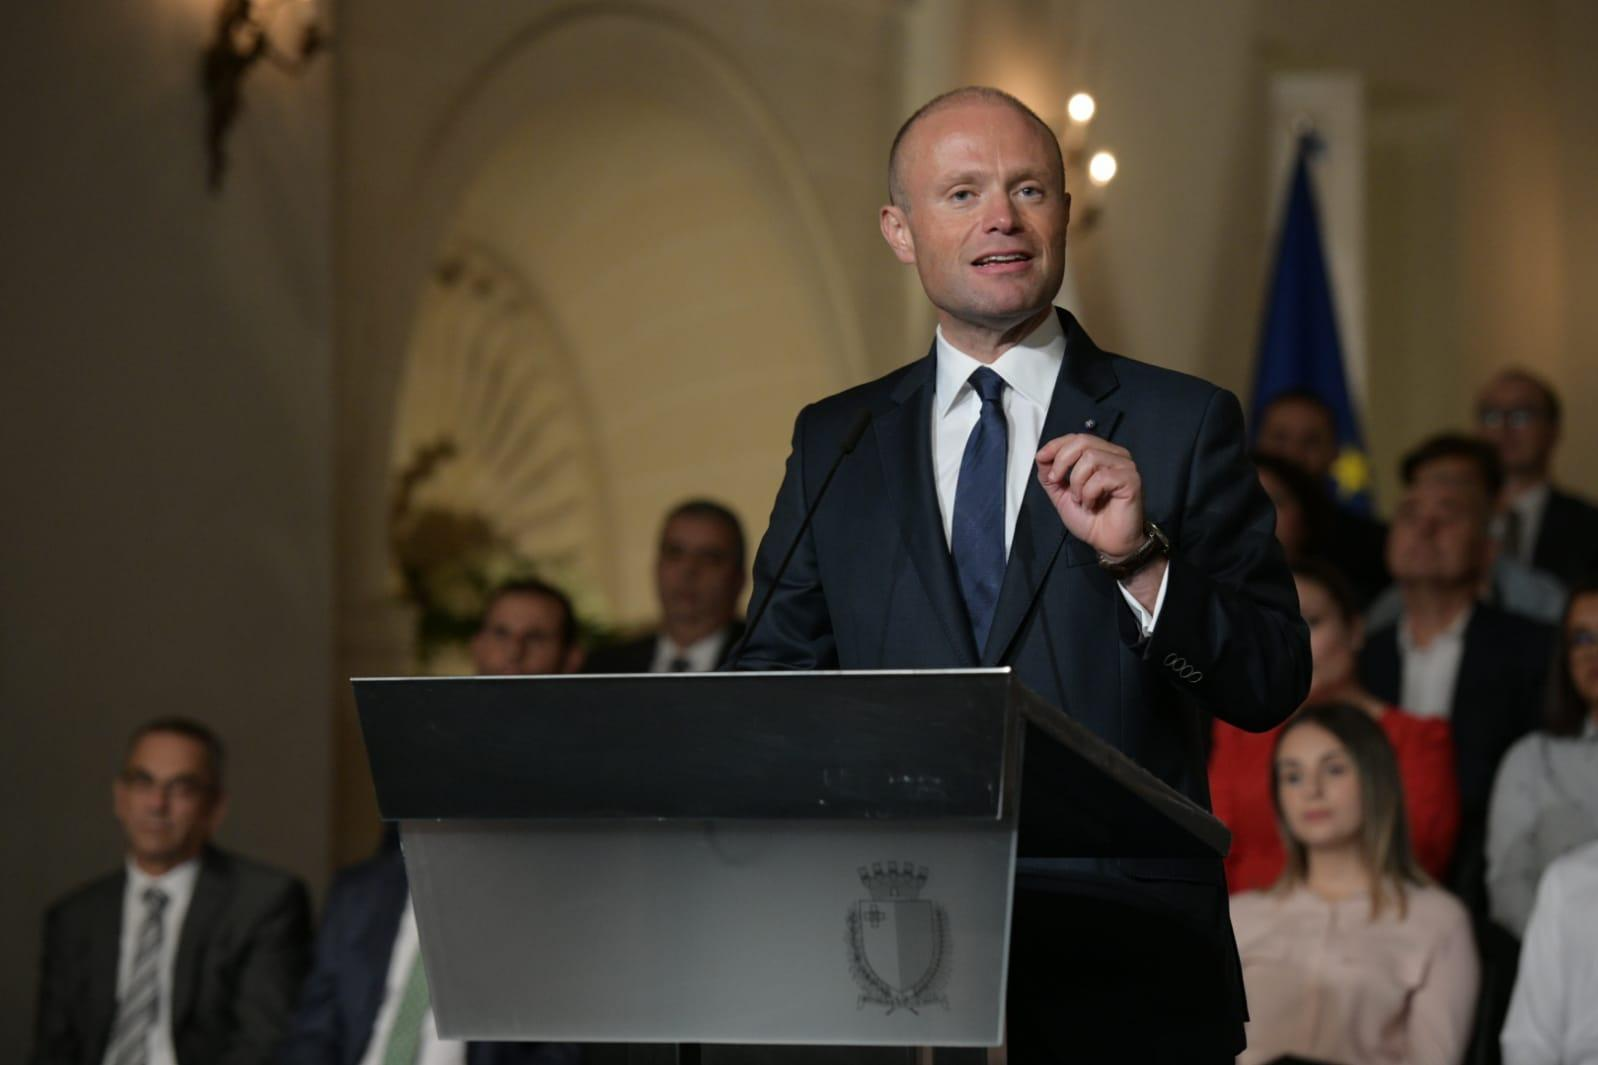 Joseph Muscat speaking at Castille. Photo: Matthew Mirabelli